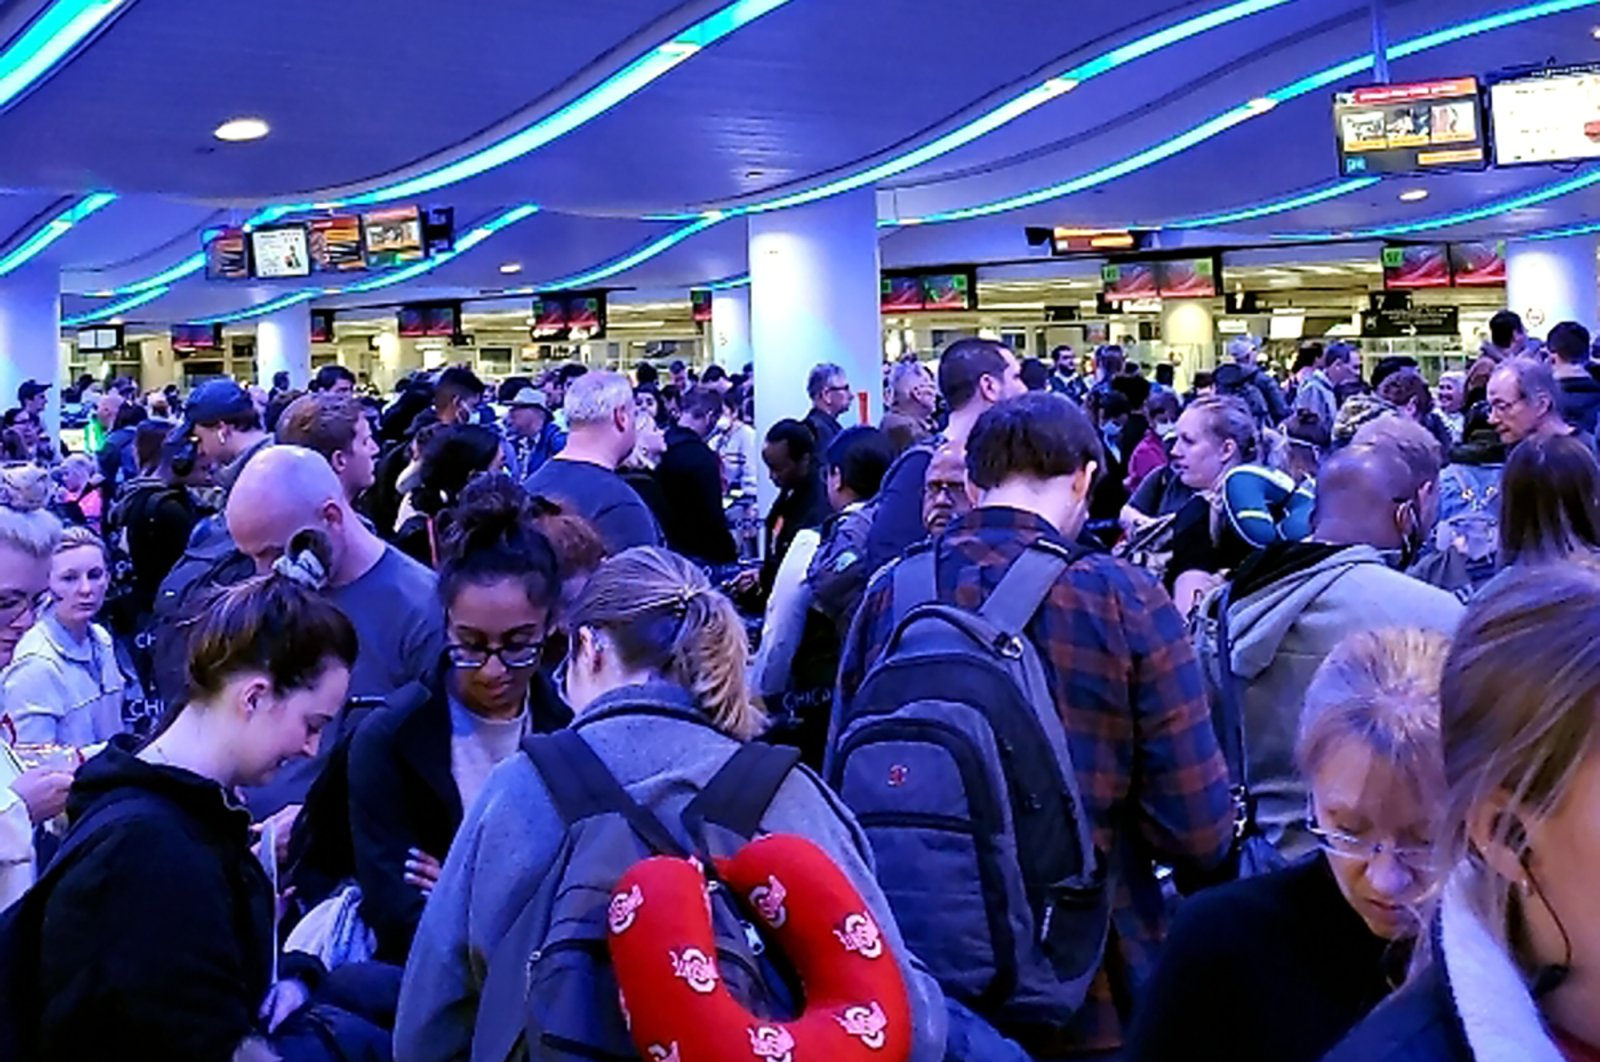 In this Saturday, March 14, 2020 photo provided by Elizabeth Pulvermacher, travelers returning from Madrid wait in a coronavirus screening line at Chicago's O'Hare International Airport. (Elizabeth Pulvermacher via AP)